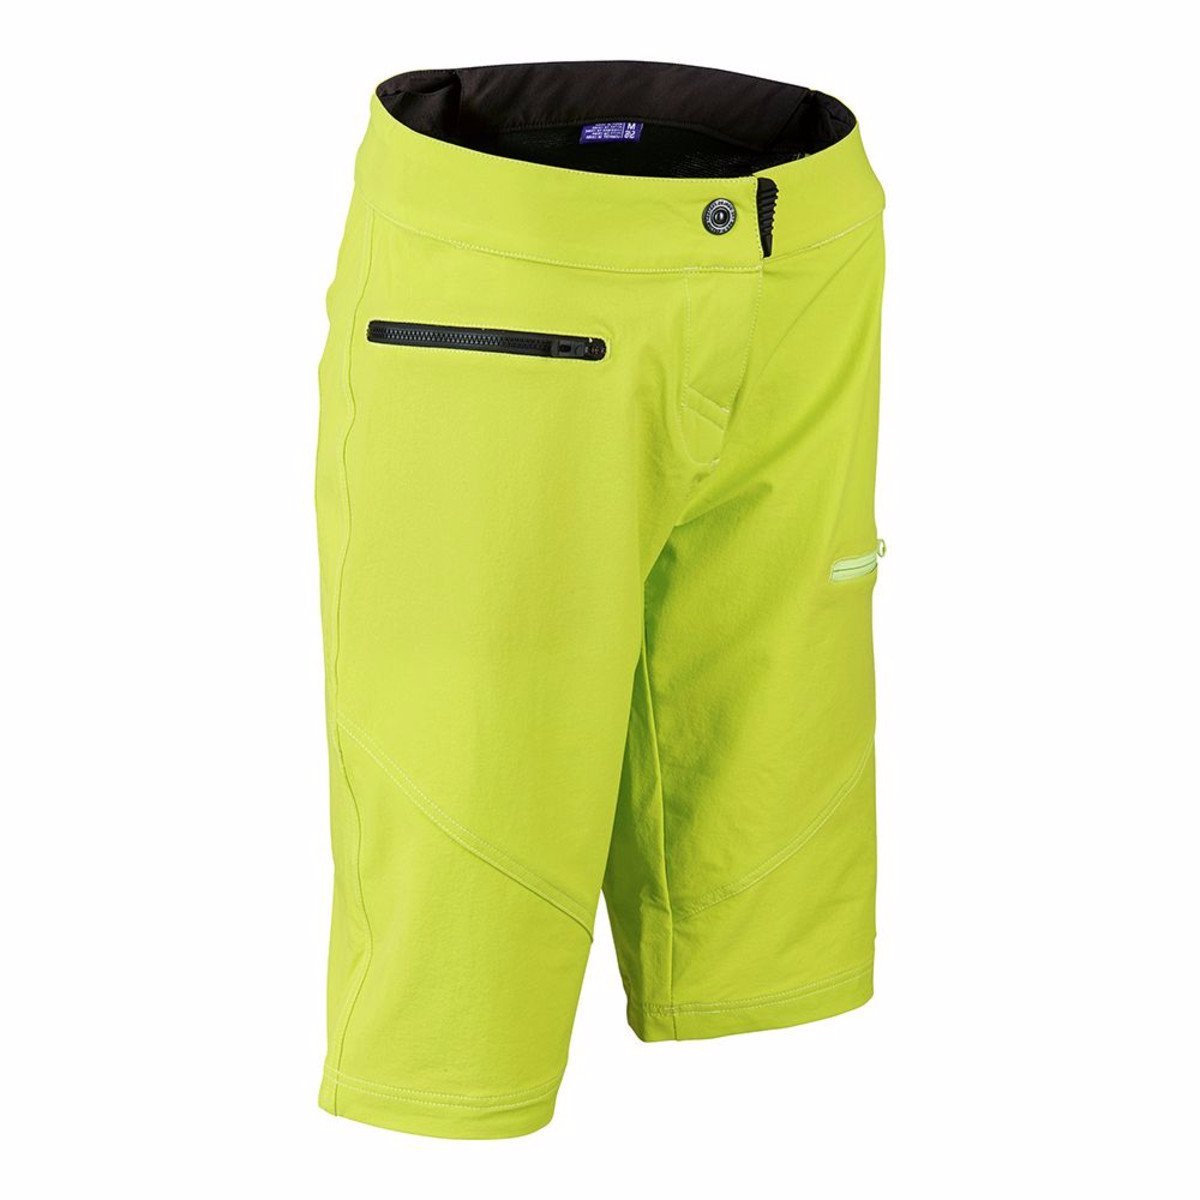 Ruckus Womens Short - Yellow by Troy Lee Designs